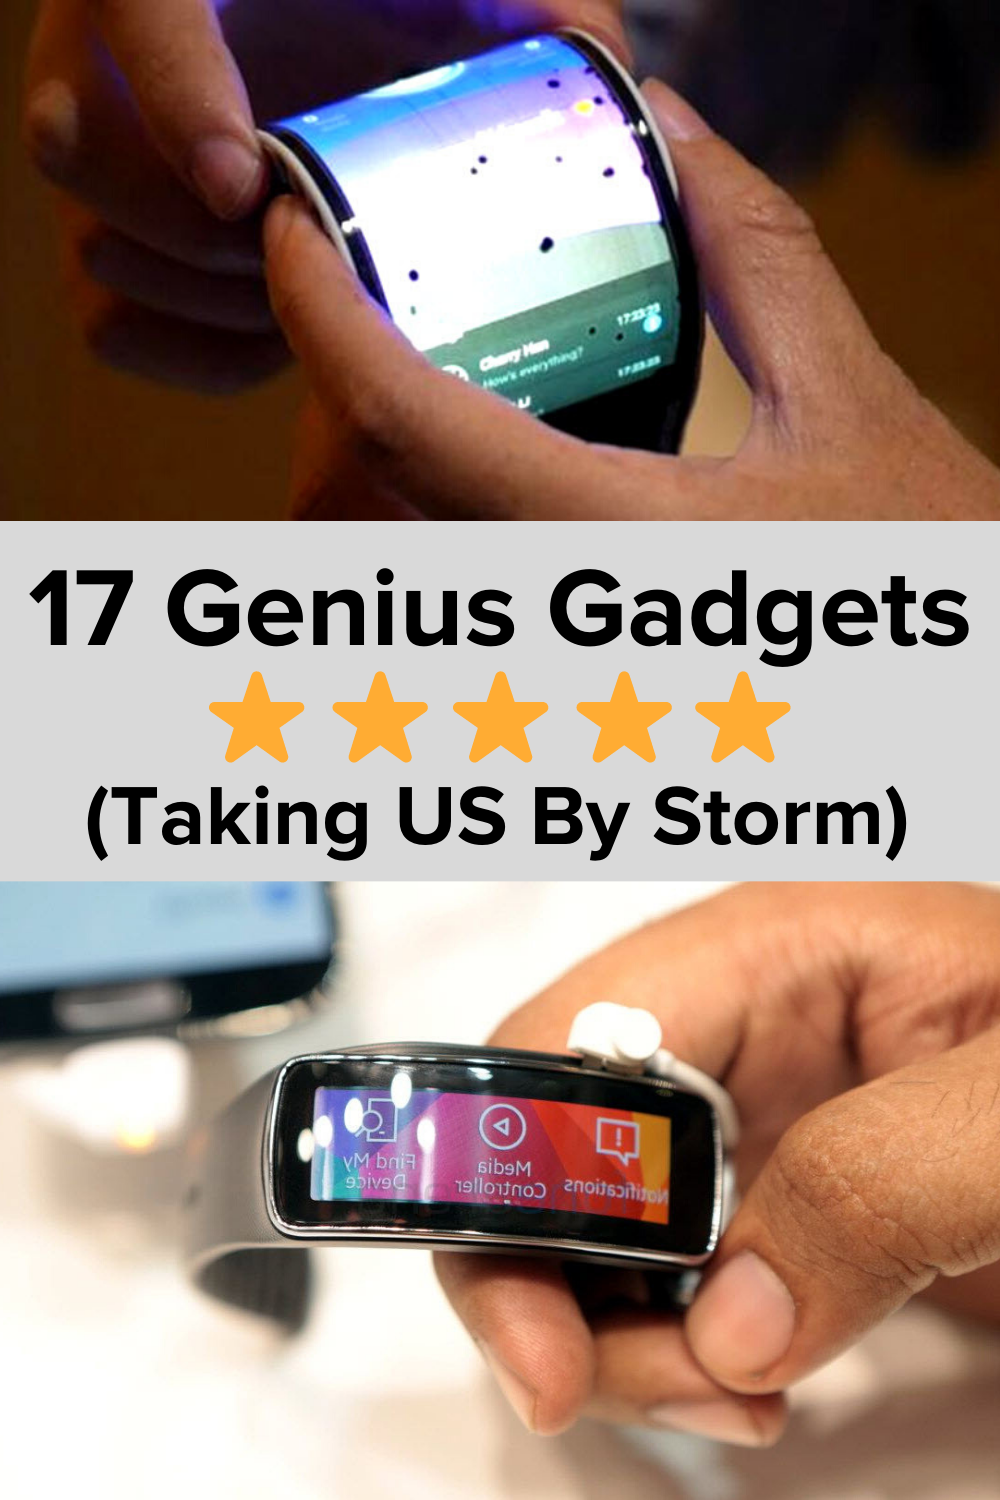 These new gadgets are flying off the shelves! Watch the